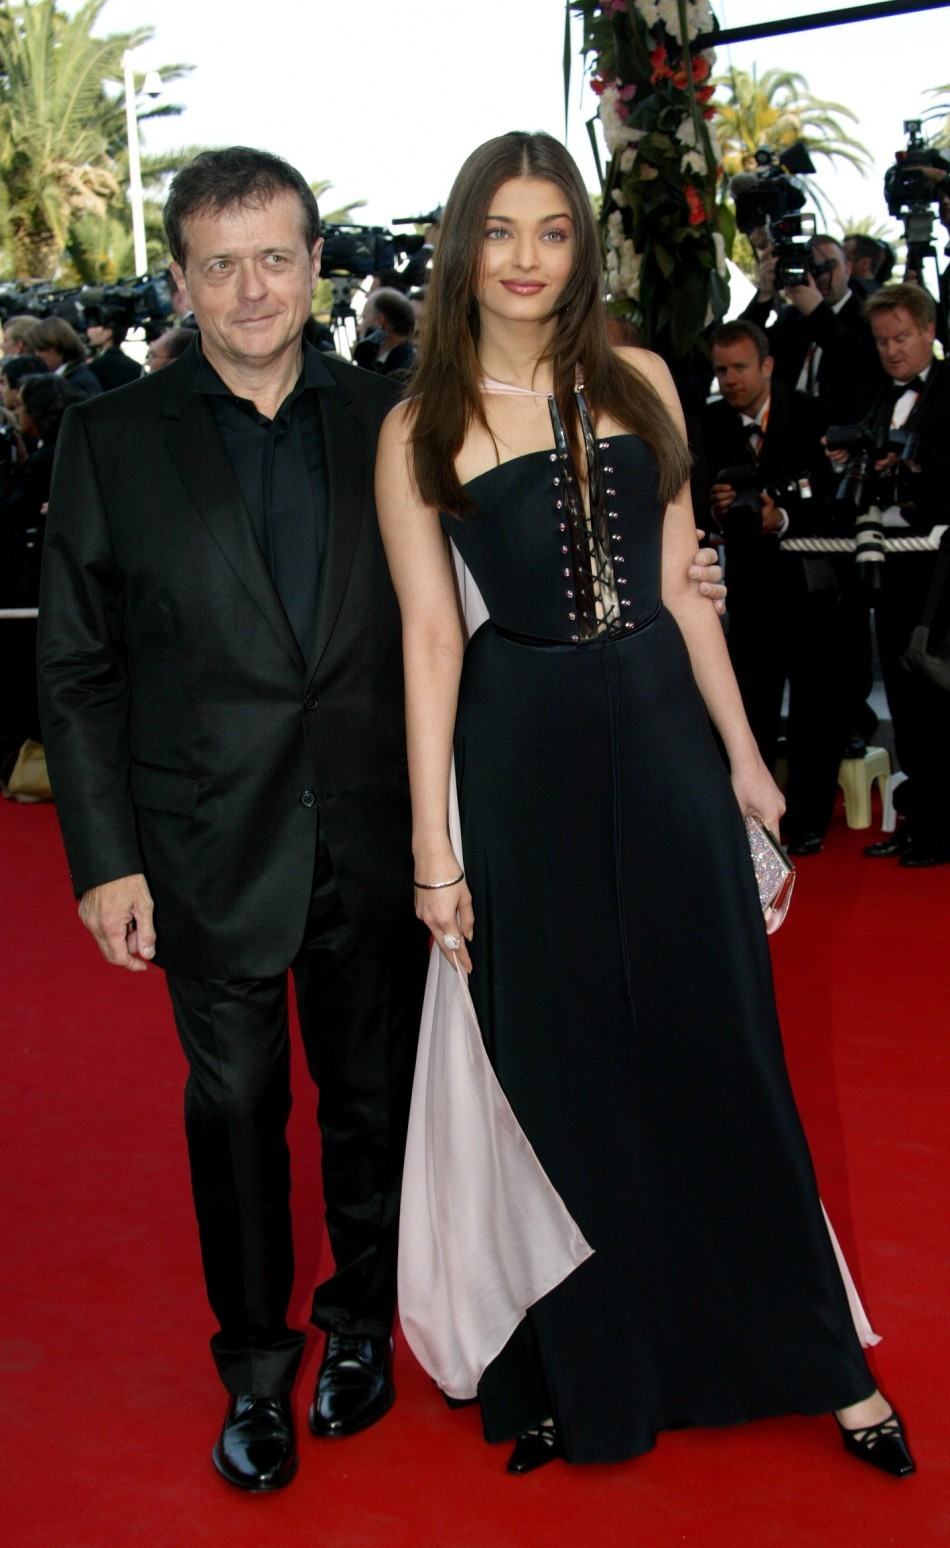 Jury President, French director Patrice Chereau (L), escorts jury member, Indian actress and a former Miss World, Aishwarya Rai (R) during red-carpet arrivals at the 56th International Film Festival in Cannes, May 15, 2003. (Reuters)